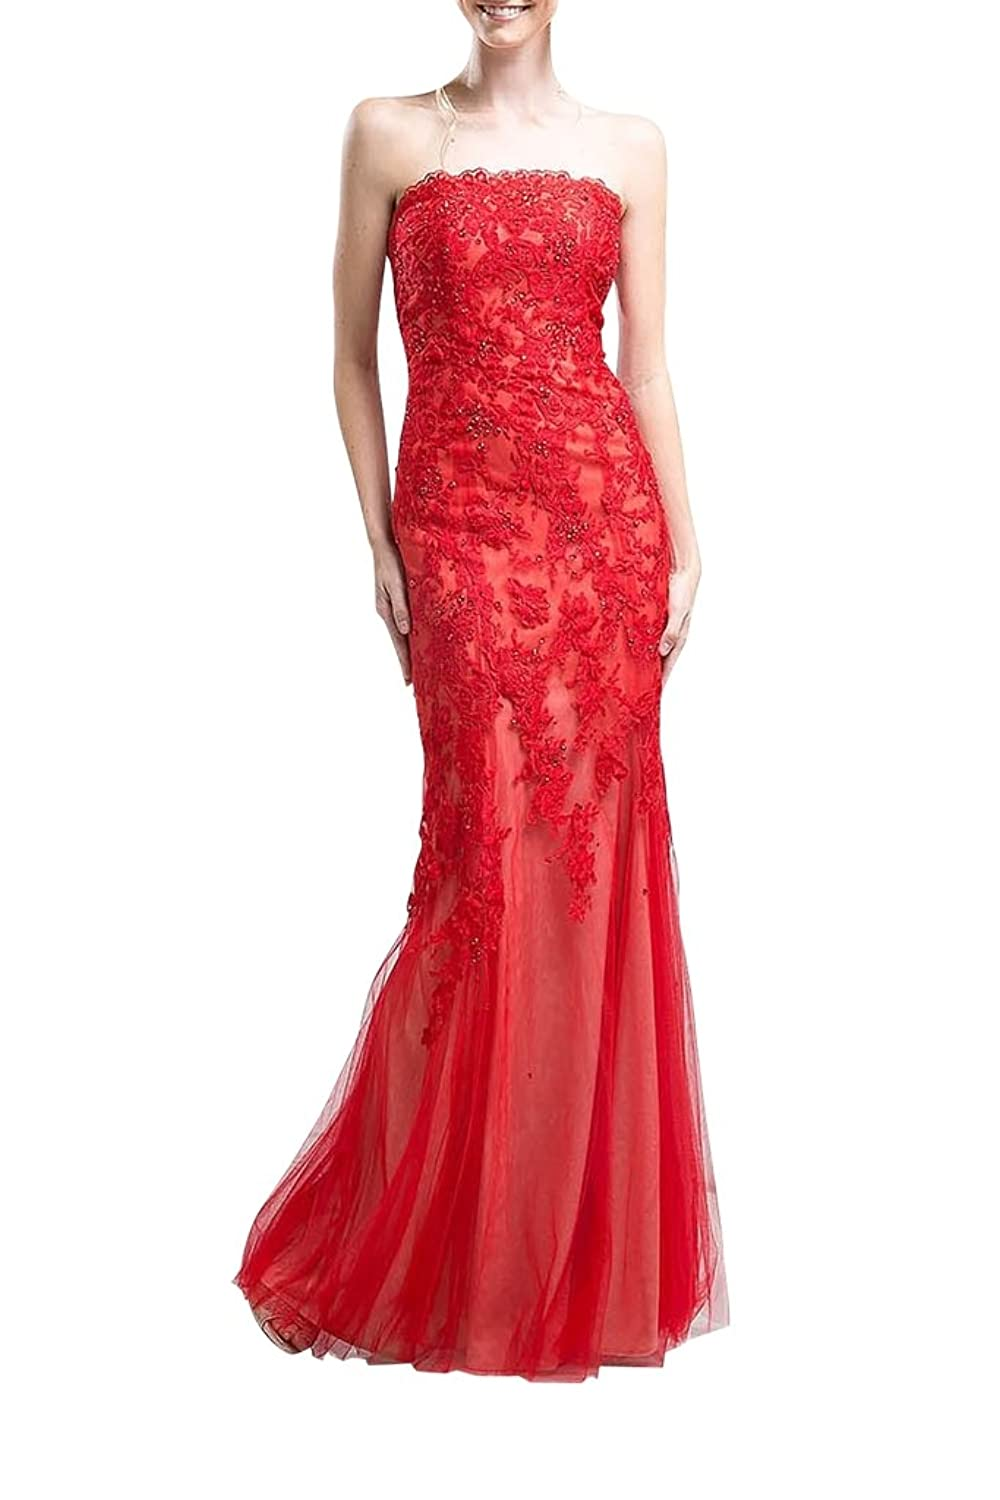 Charm Bridal Long Red Appliqued Strapless Women Wedding Dress for Bride